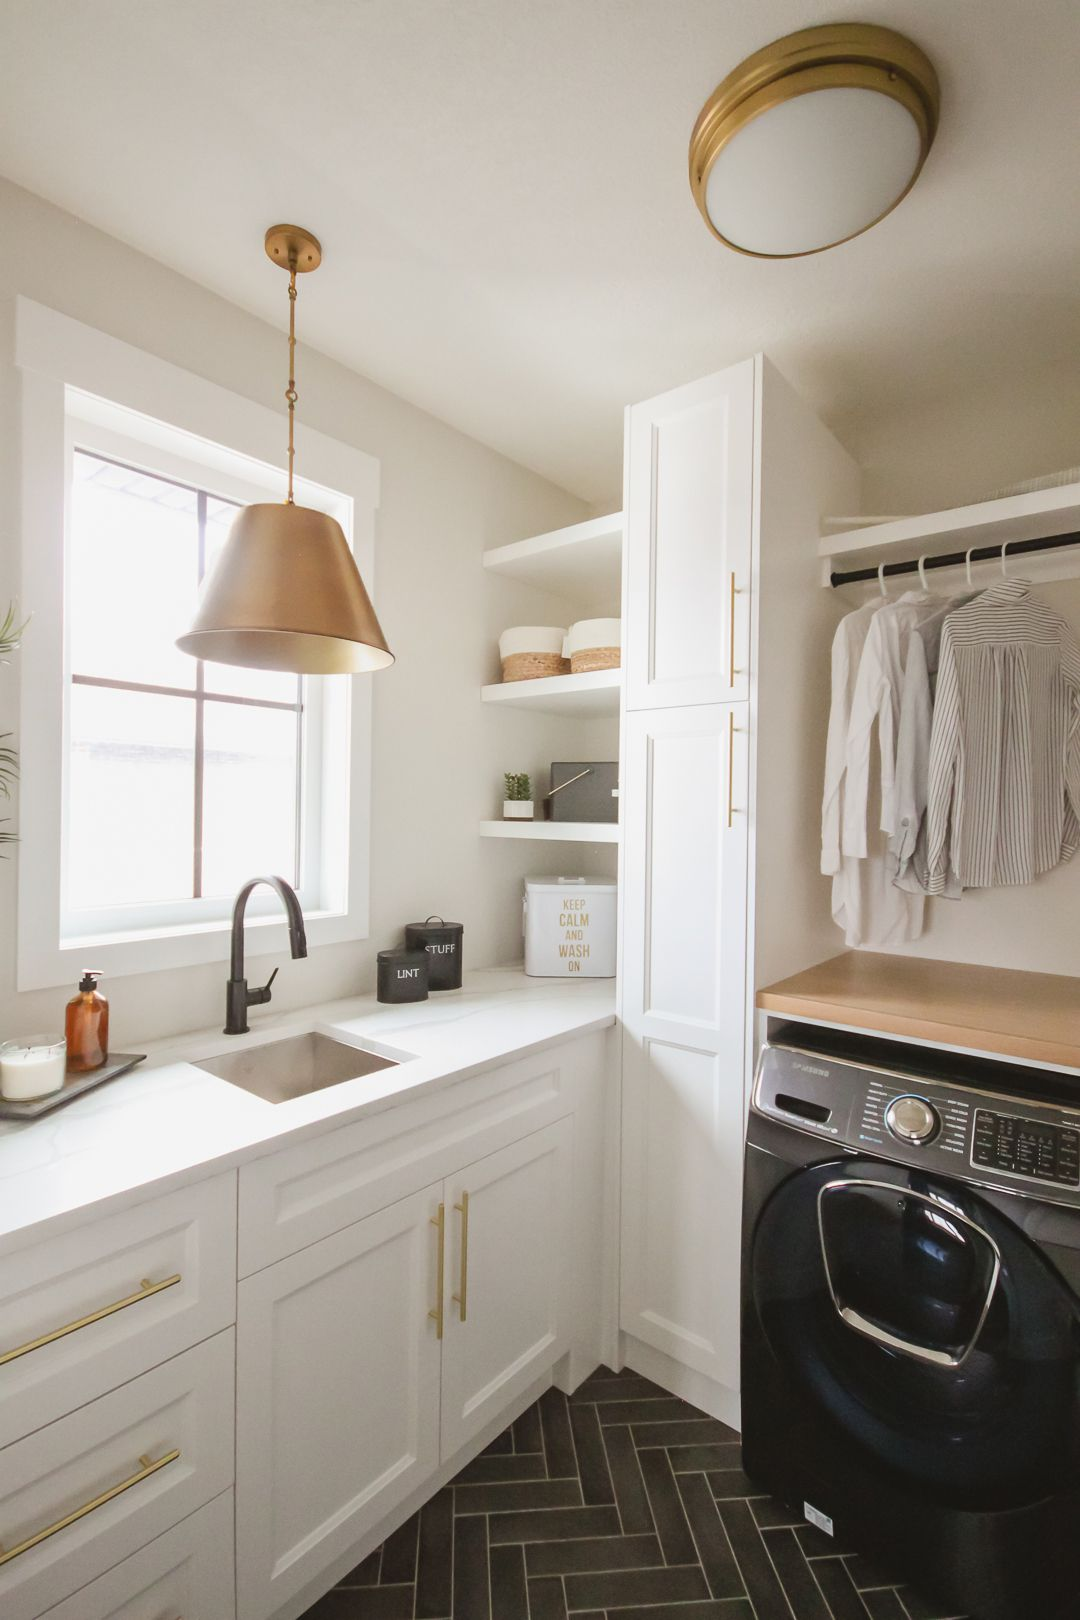 10 Best Laundry Room Paint Colors To Make Chores More Fun